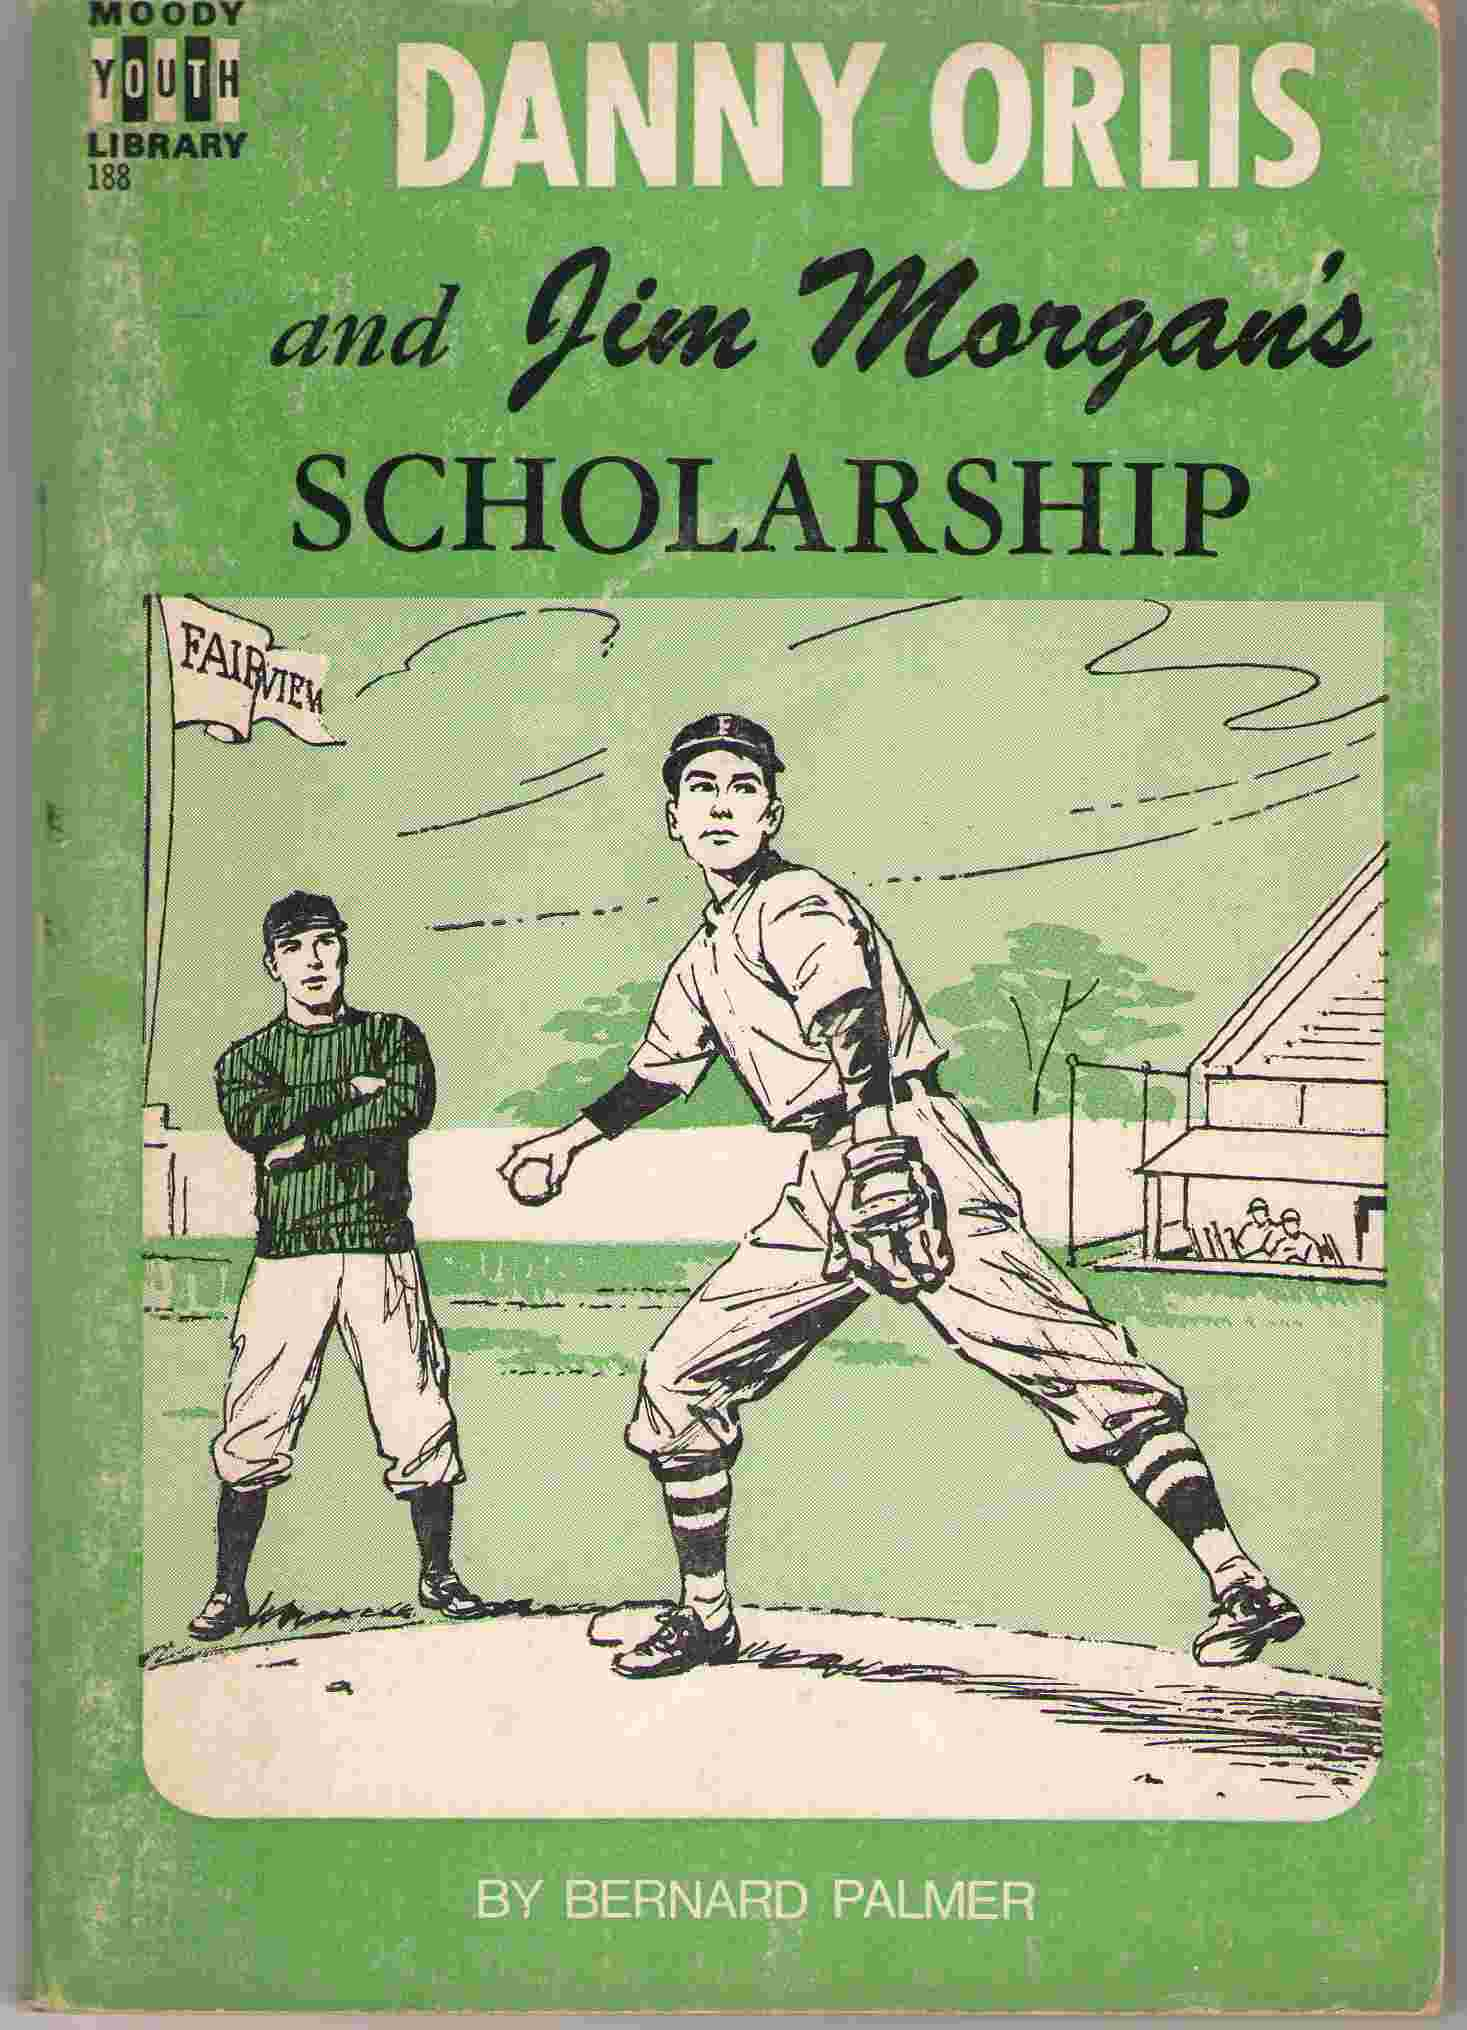 Danny Orlis And Jim Morgan's Scholarship